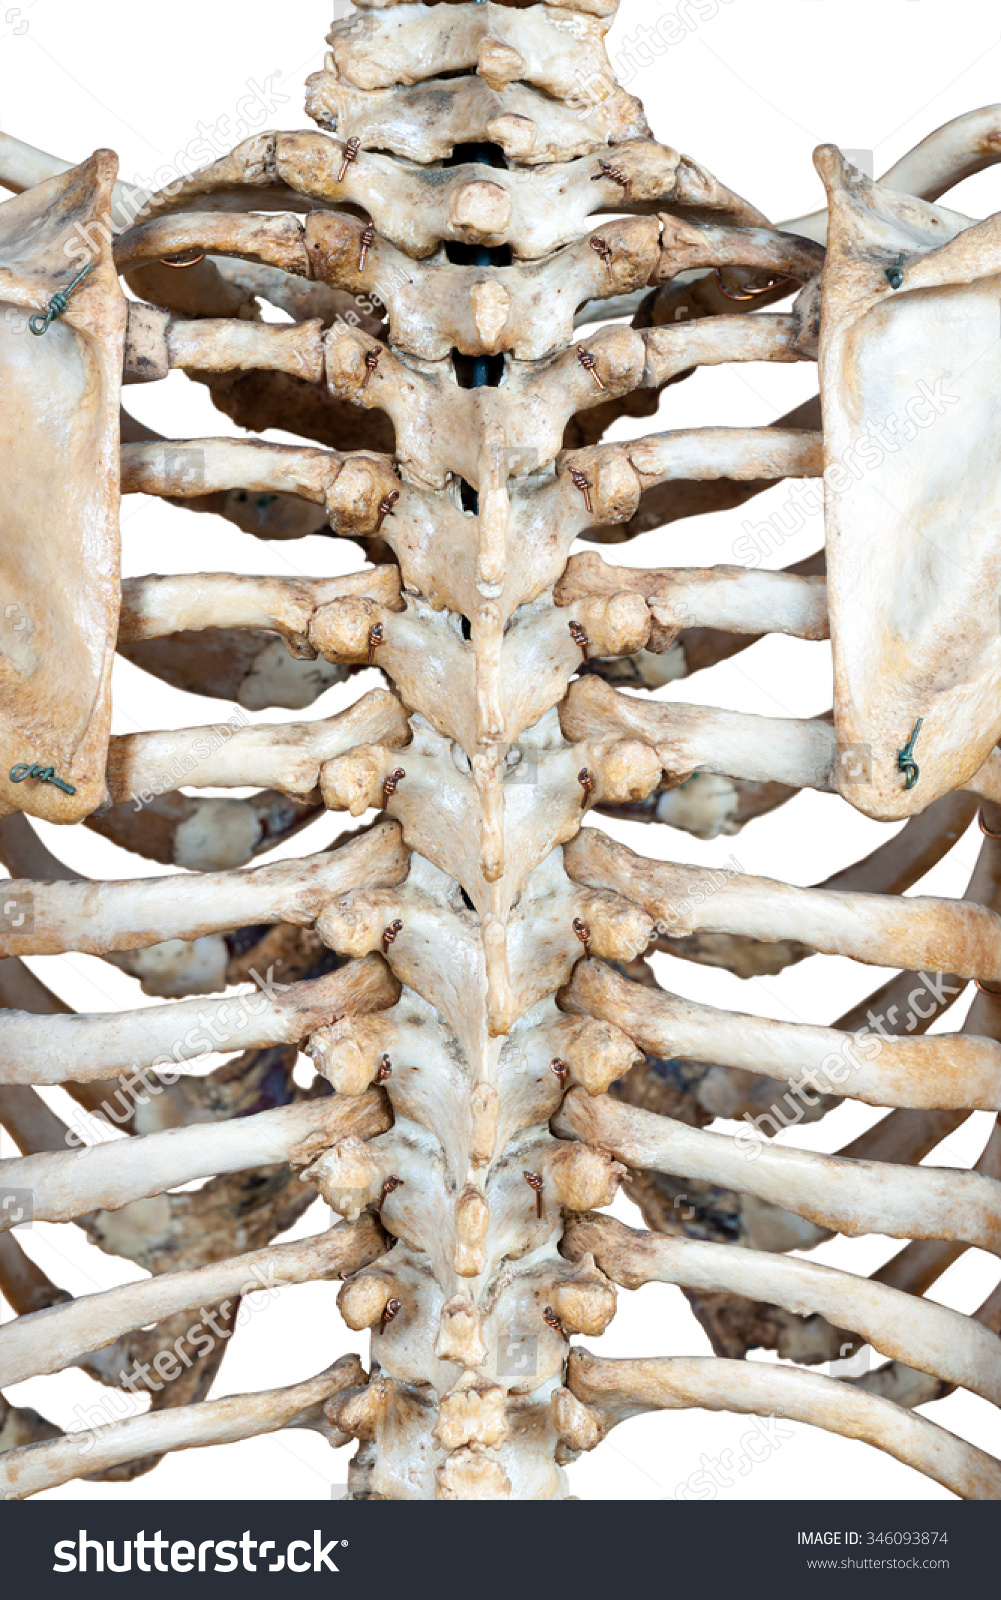 Human Back Bones Stock Photo Edit Now 346093874 Shutterstock